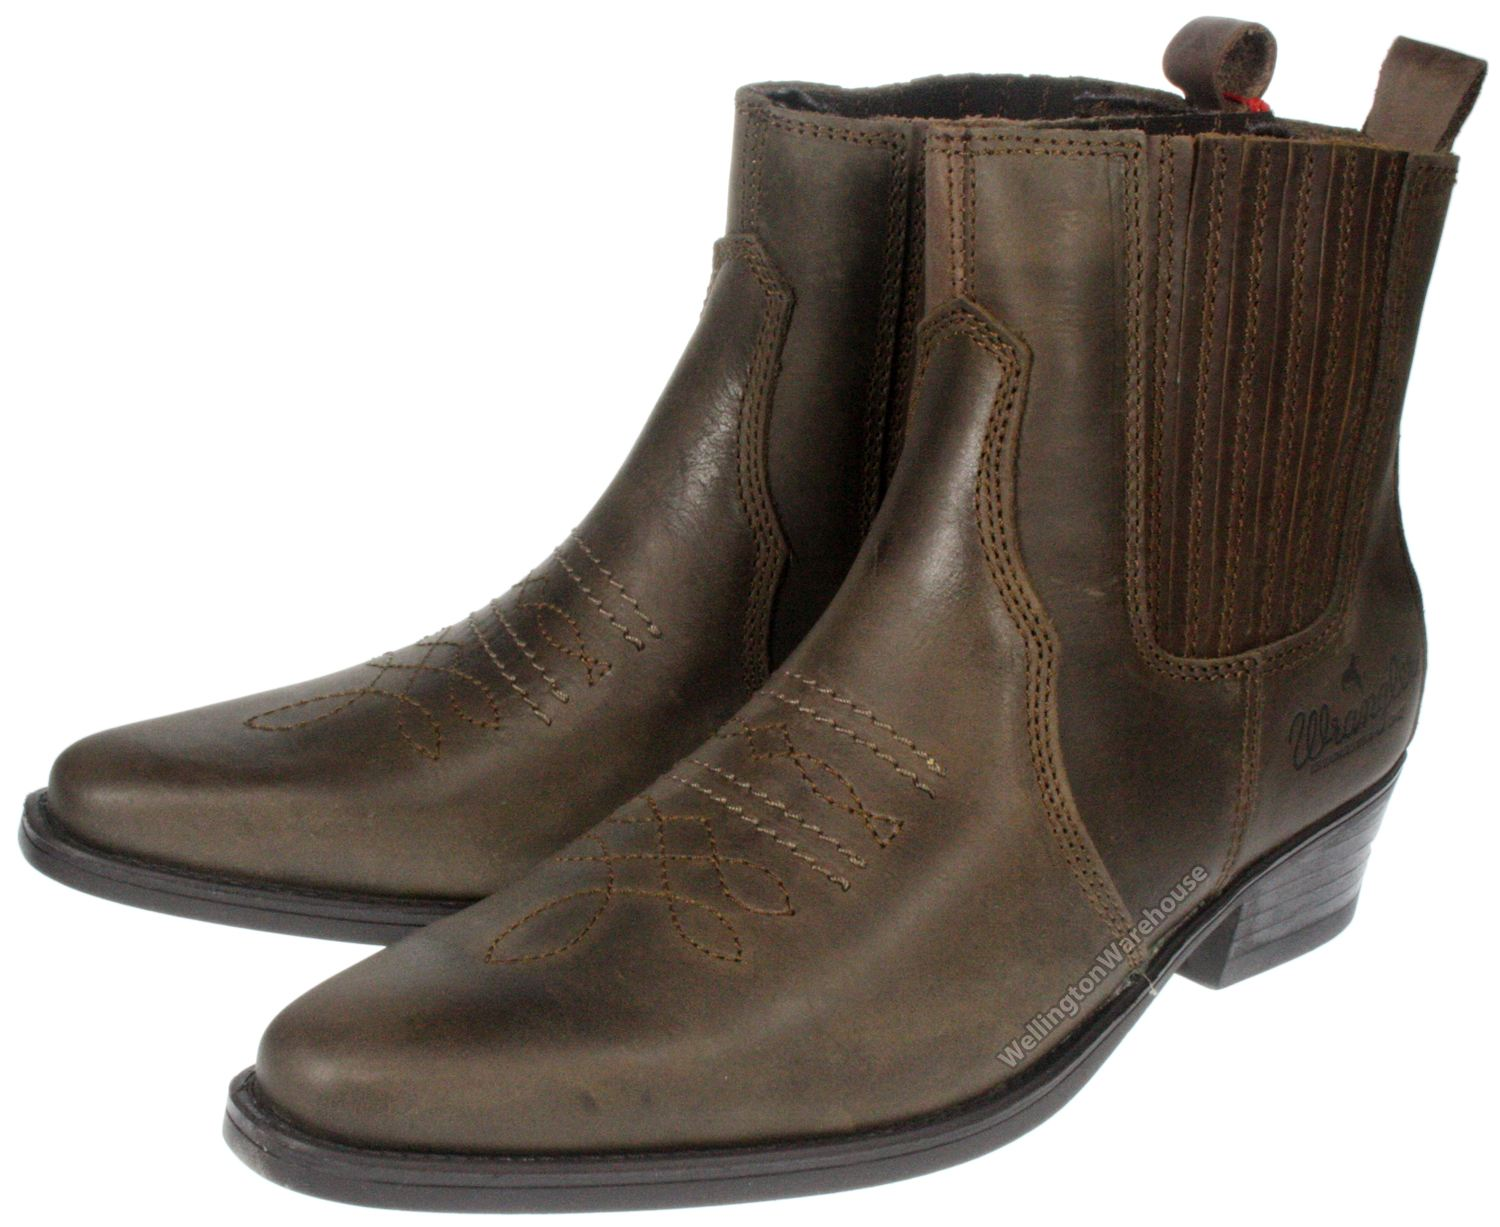 551dc14127c Details about Wrangler Tex mid black, brown leather pull on Mens cowboy  pointy toe boots